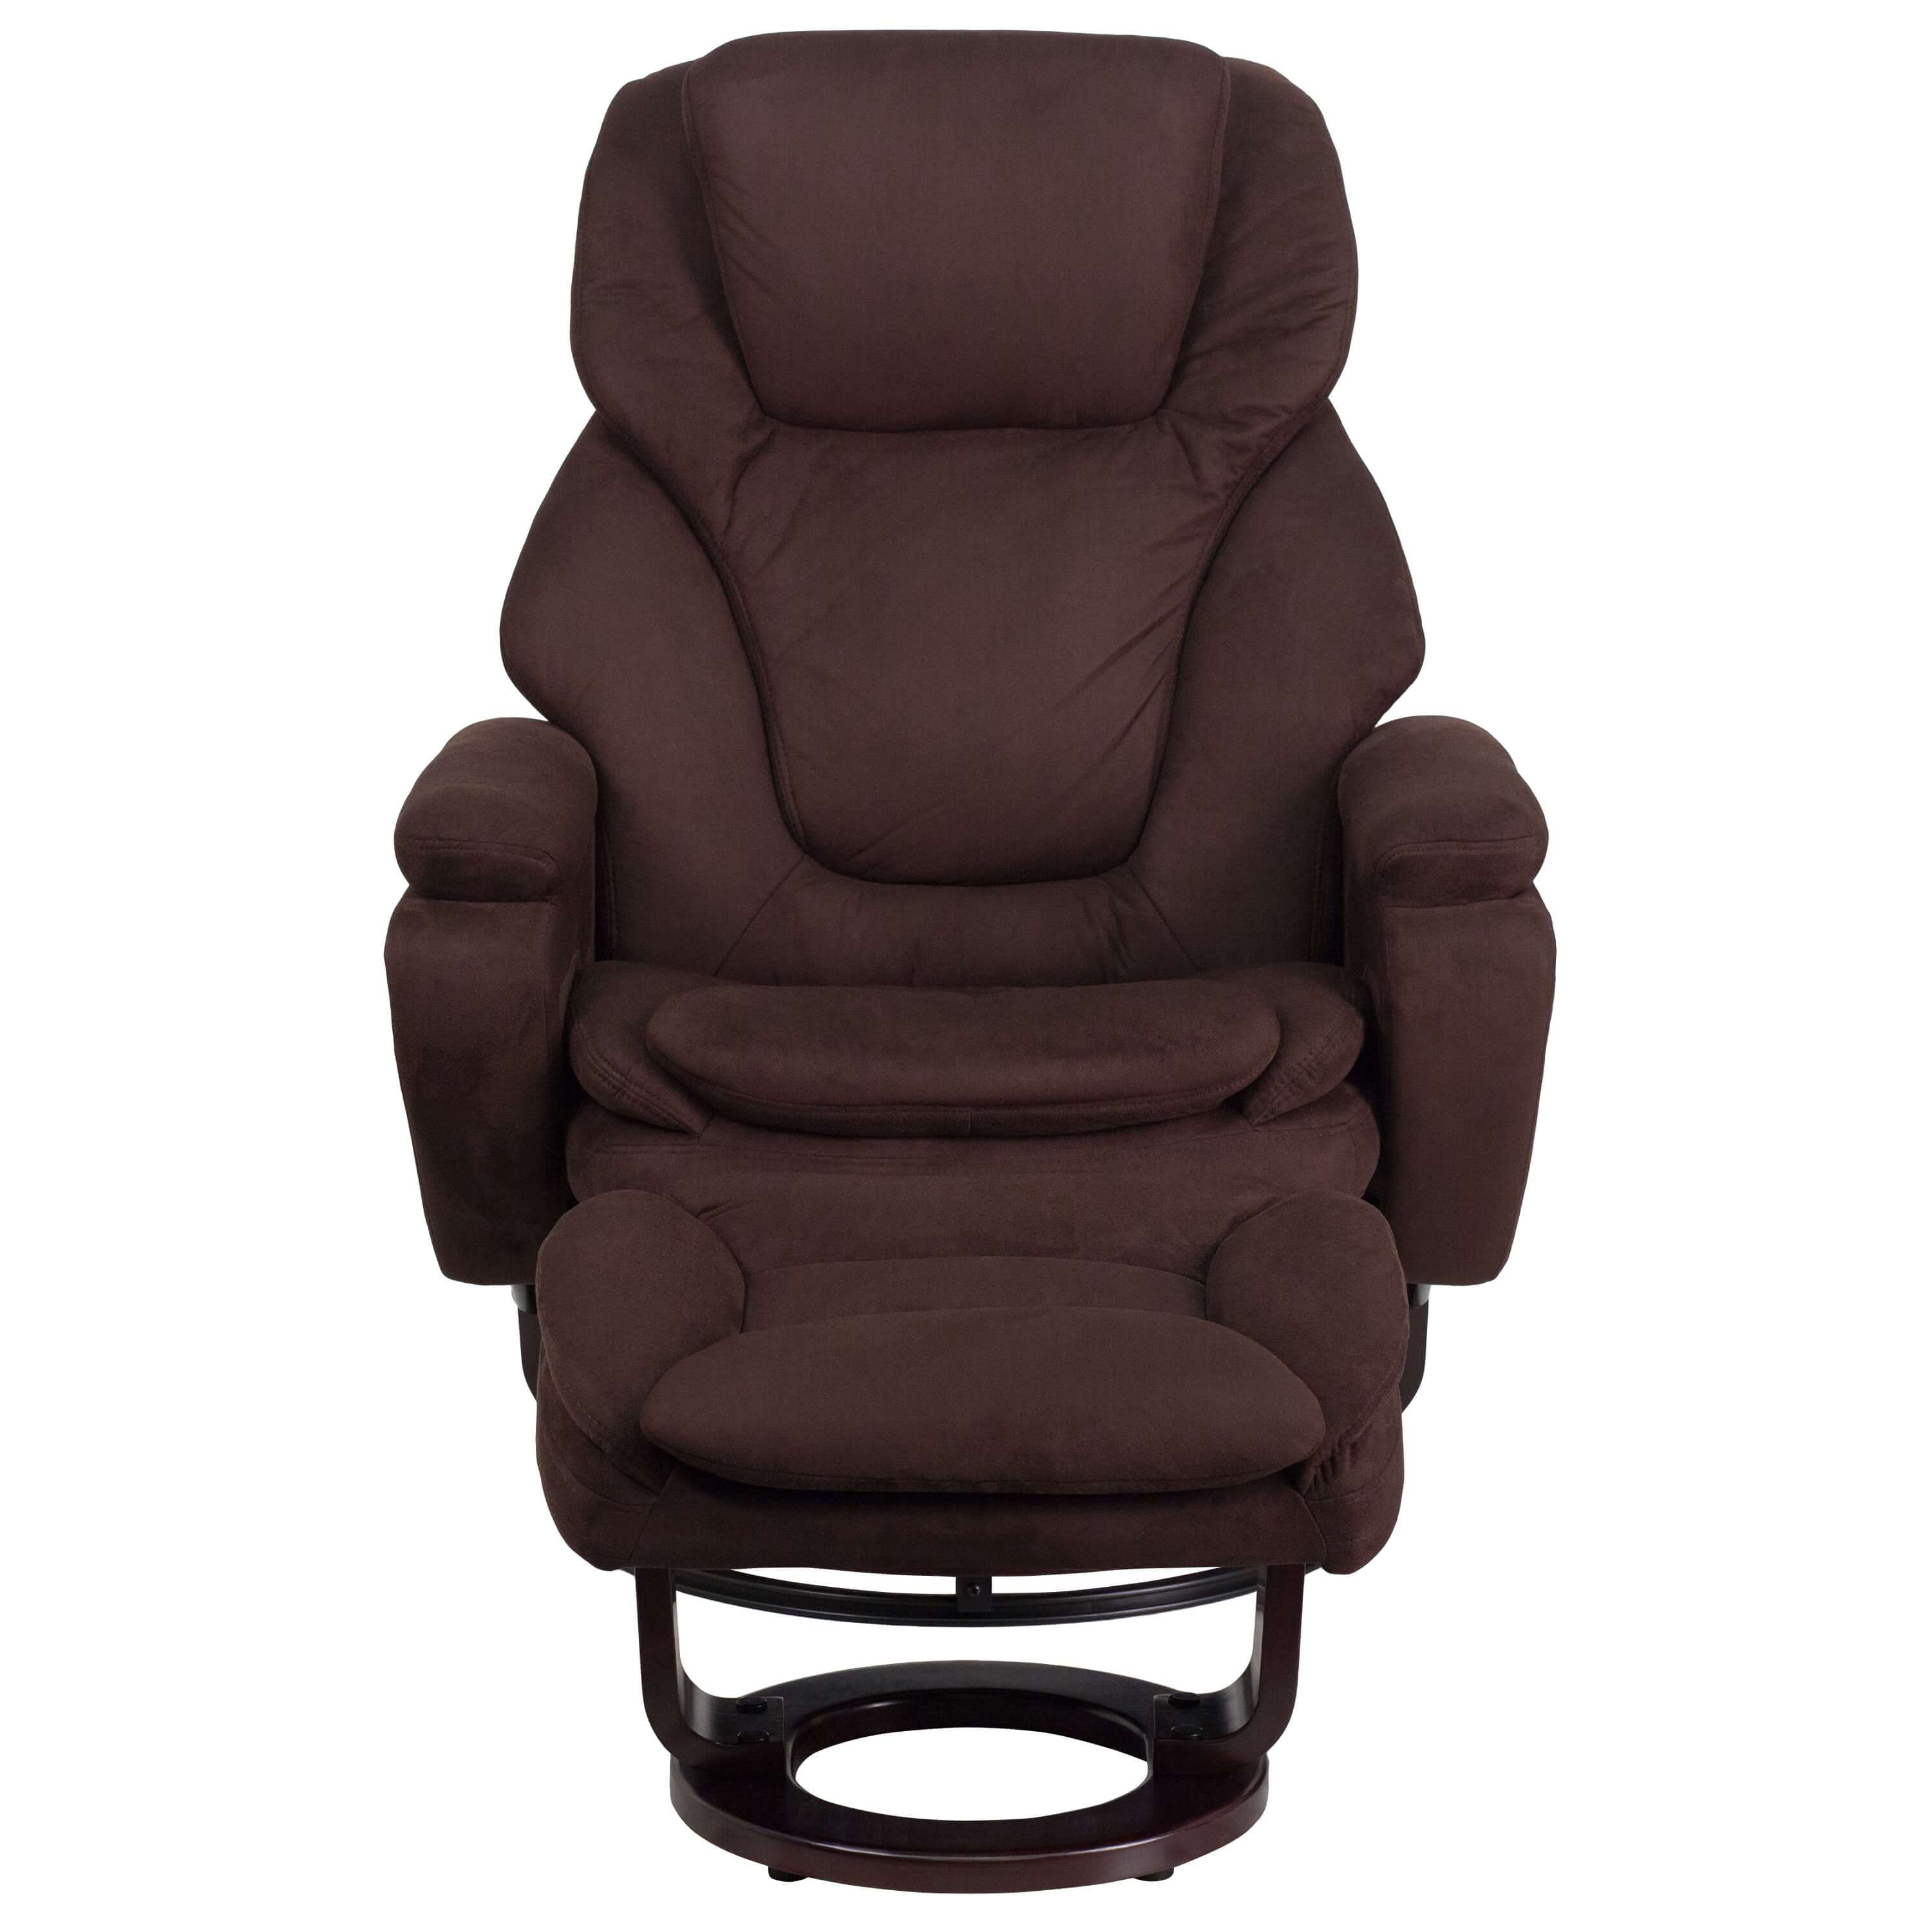 Brown recliner front view